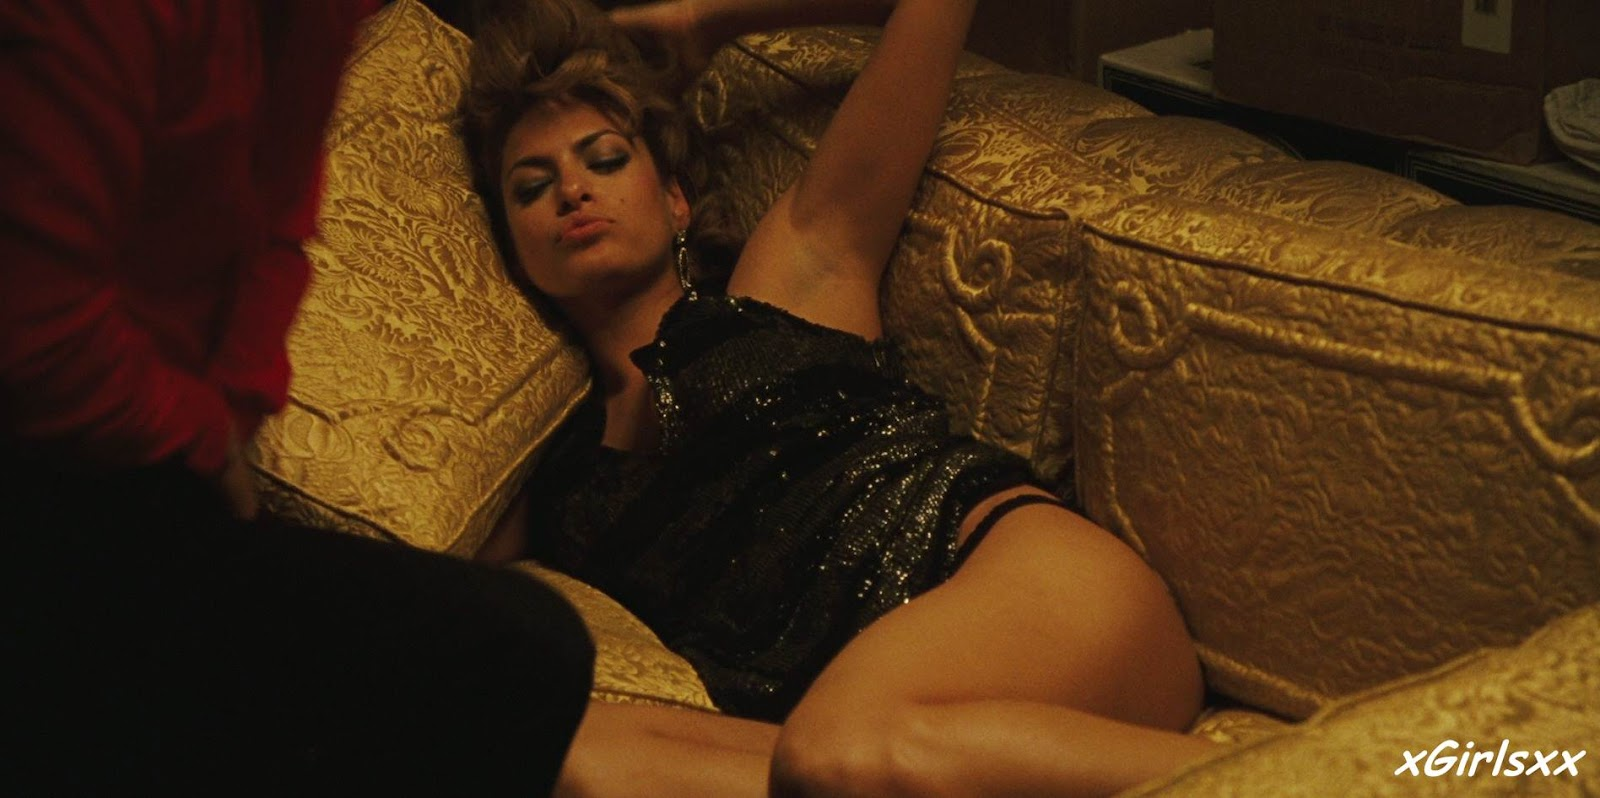 Butt naked pictures eva mendes